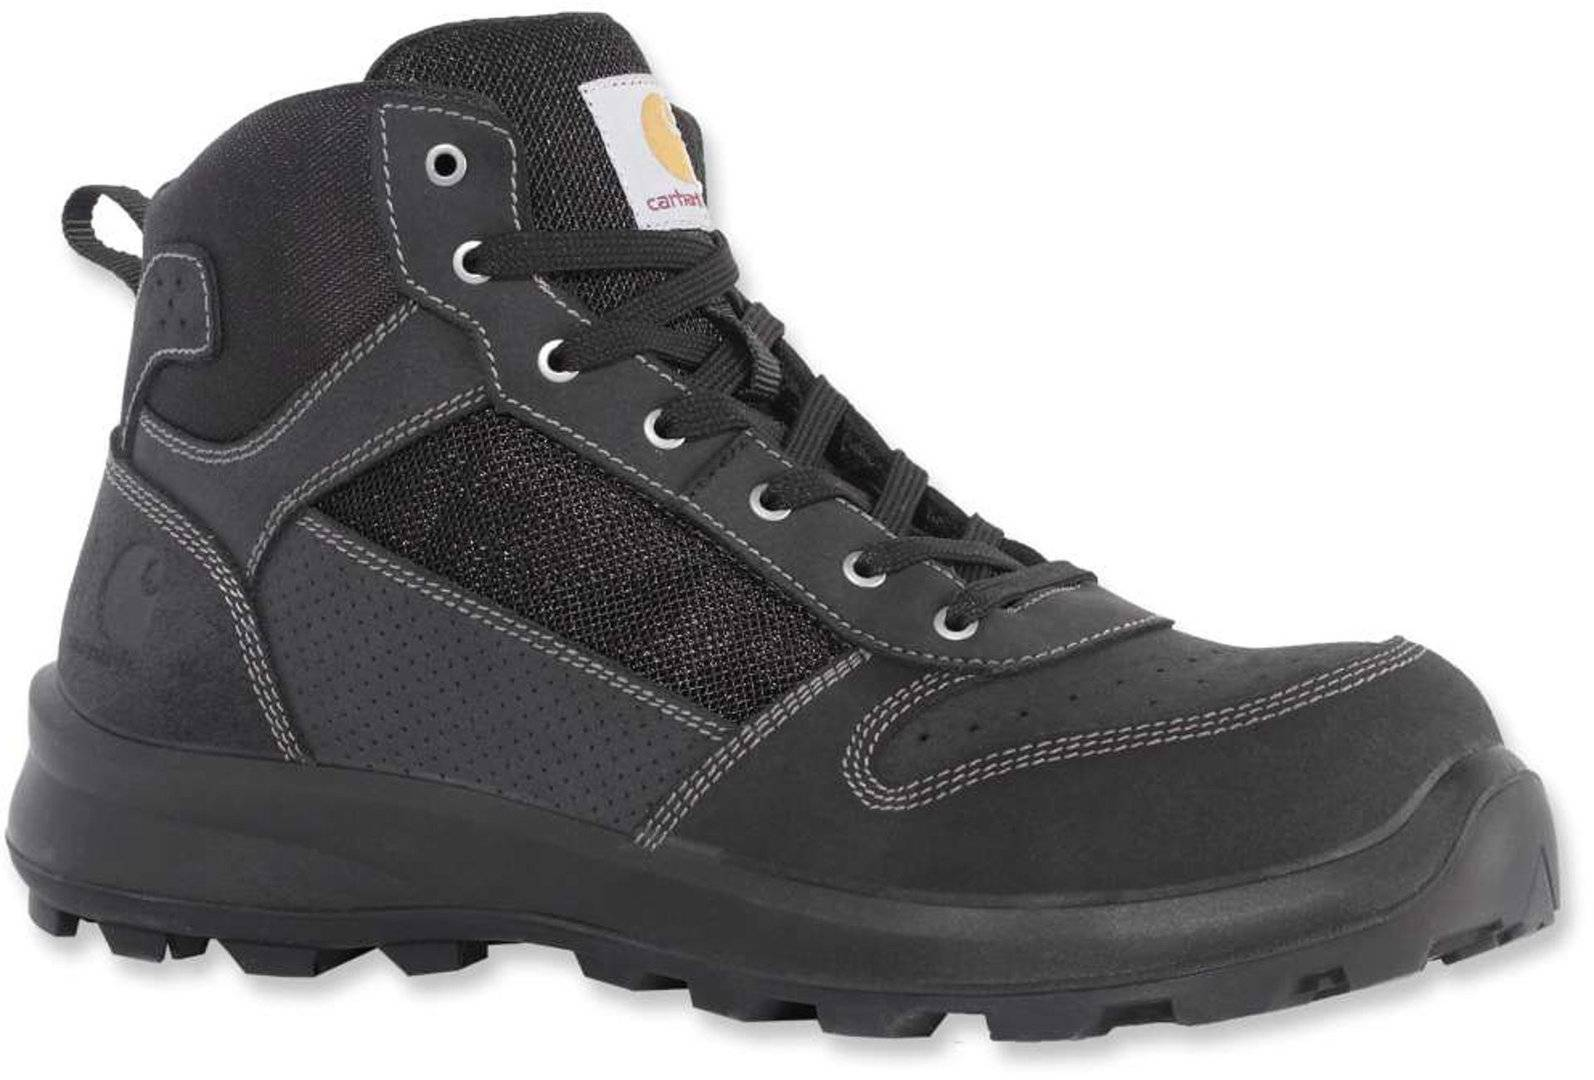 Carhartt Mid S1P Safety Boots  - Size: 47